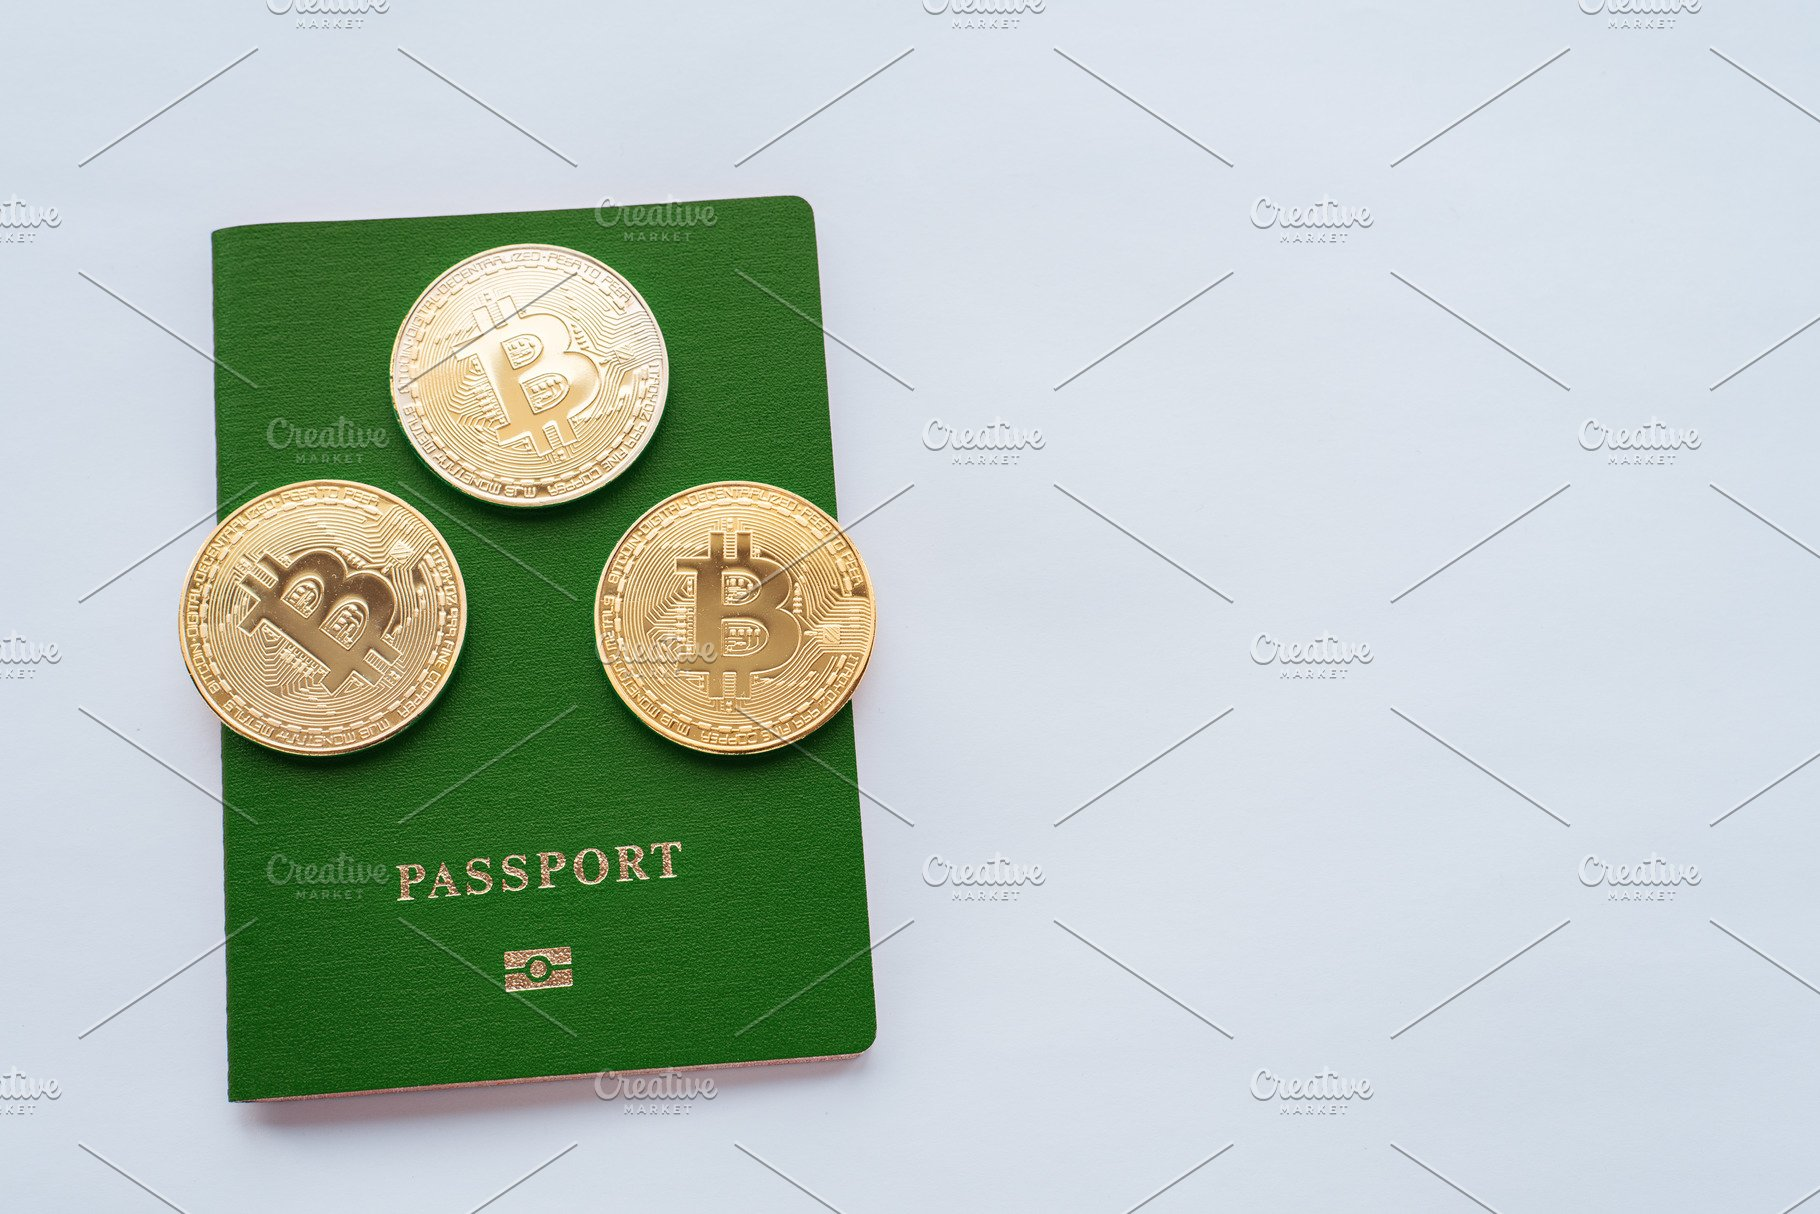 Green passport white background, digital currency bitcoin, gold coins   Crypto account identification currency  ID confirmation  Verification